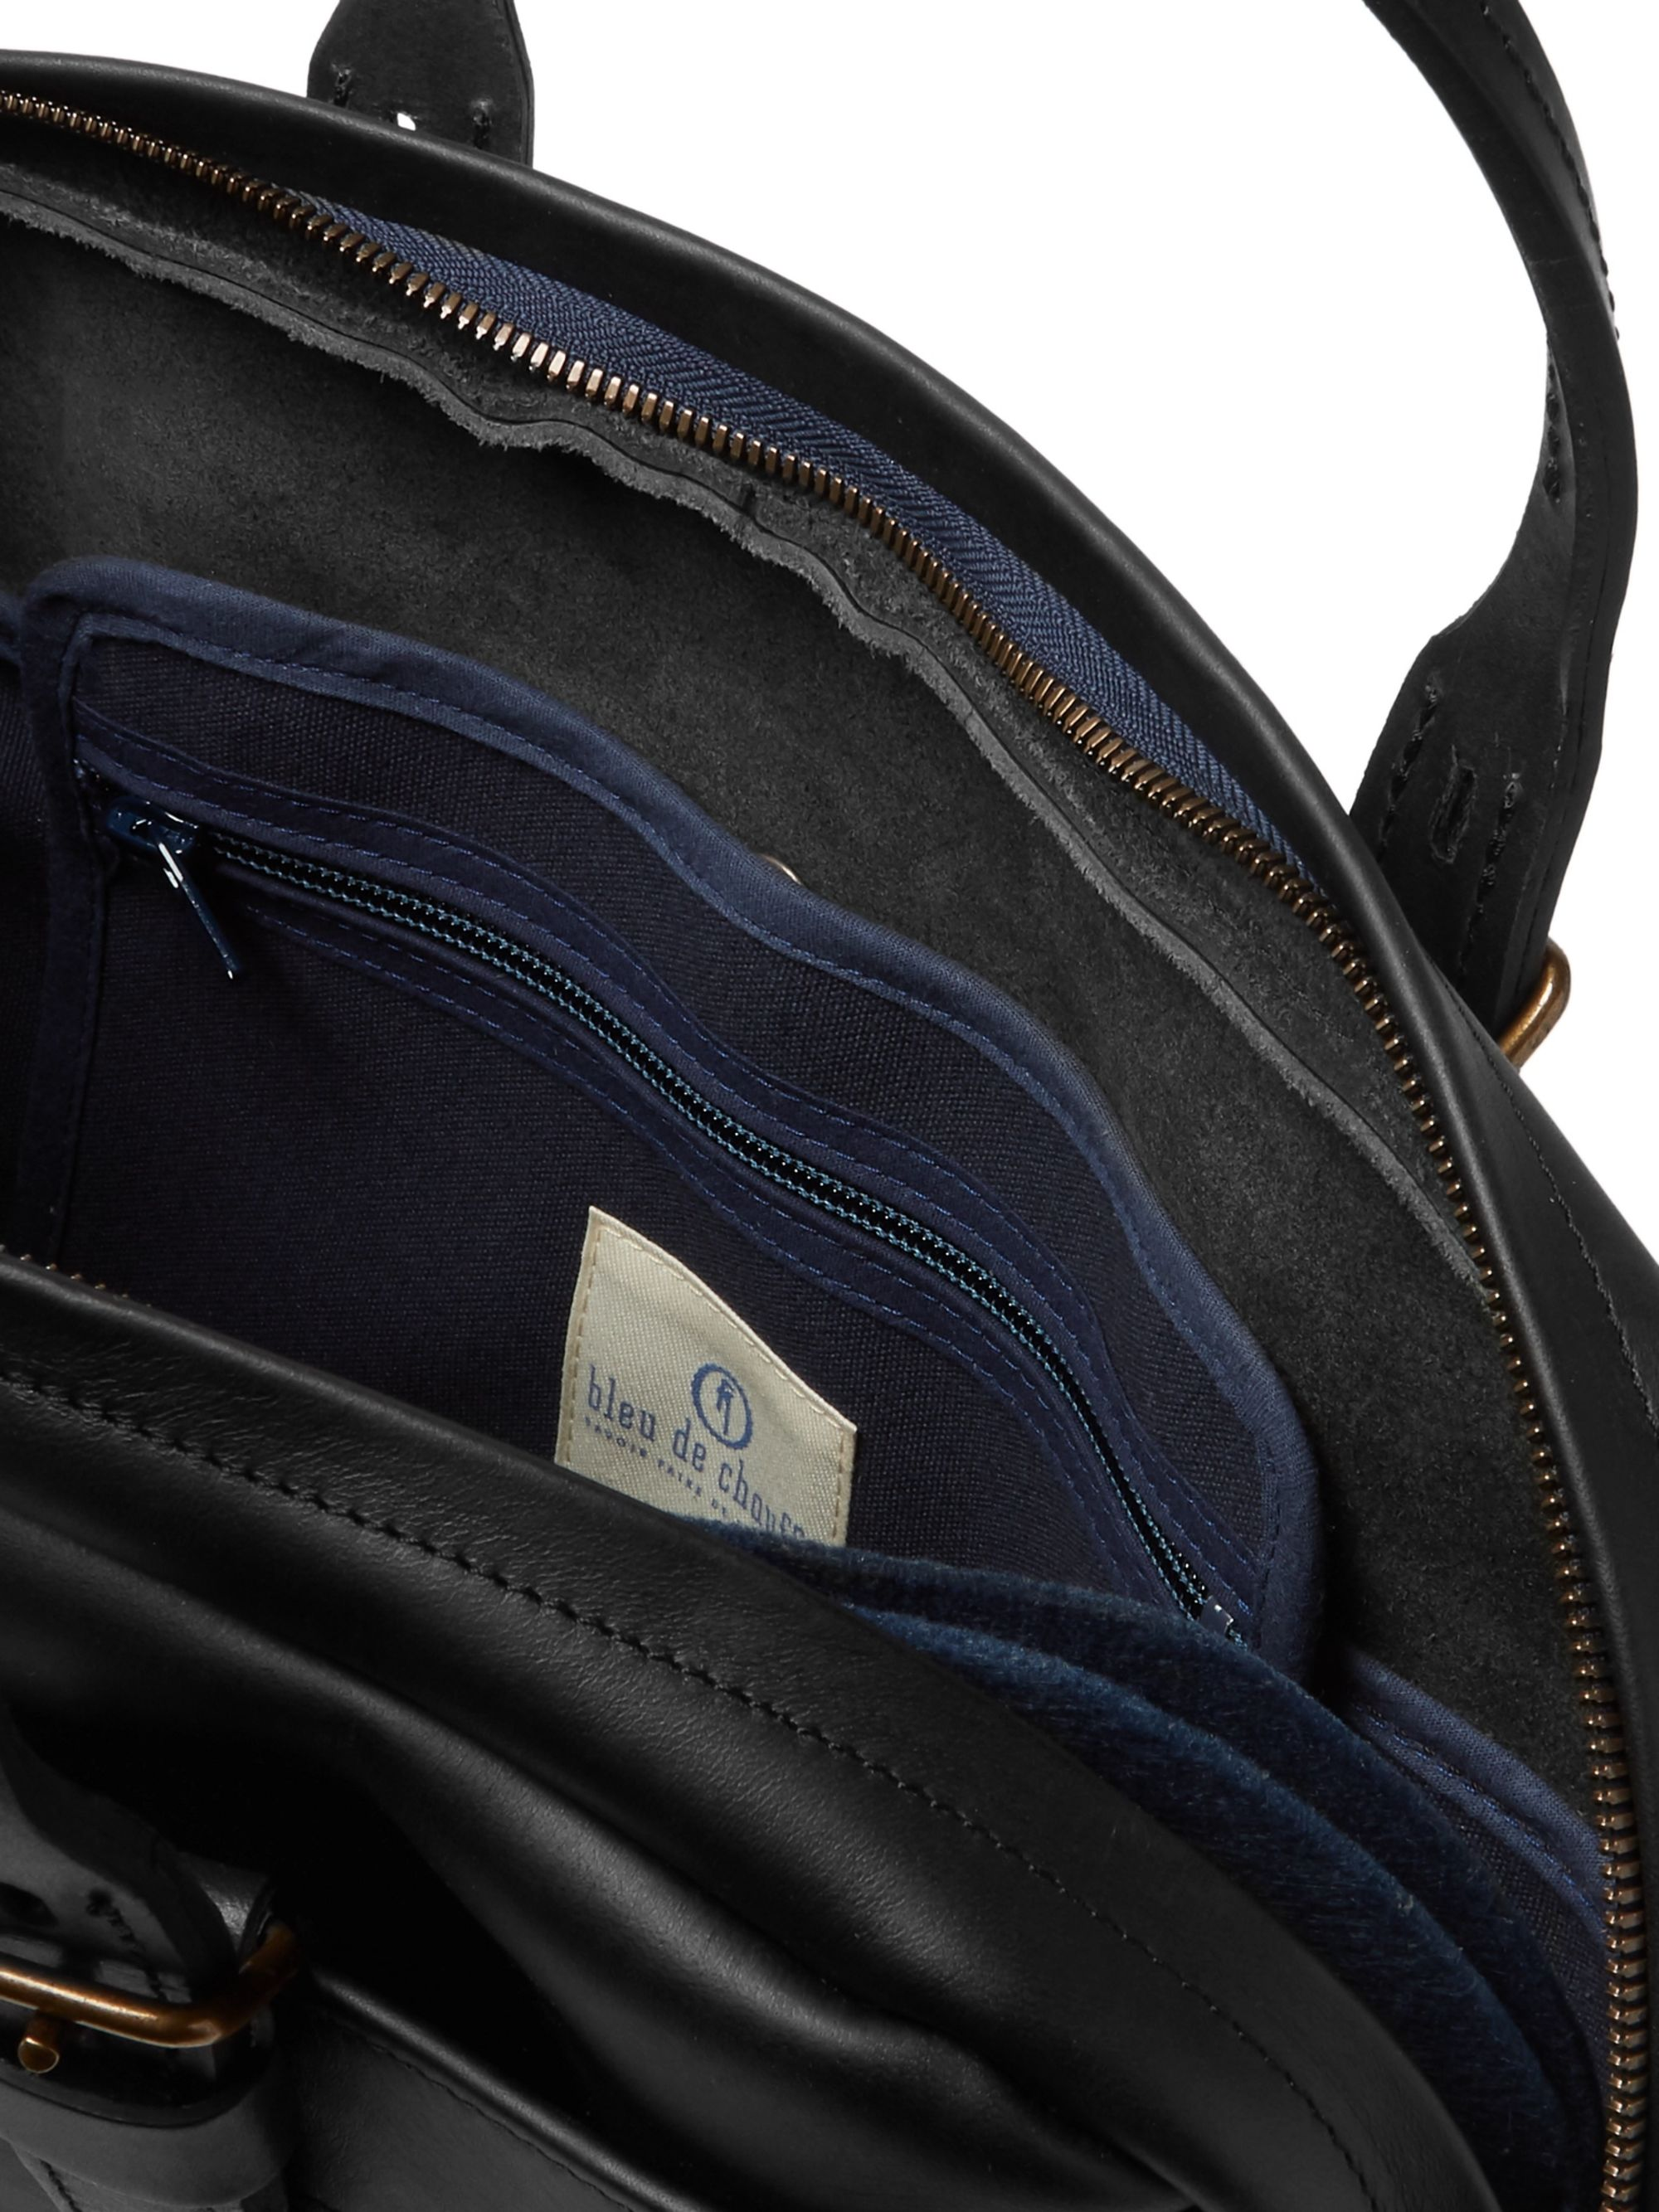 Bleu de Chauffe Leather Briefcase